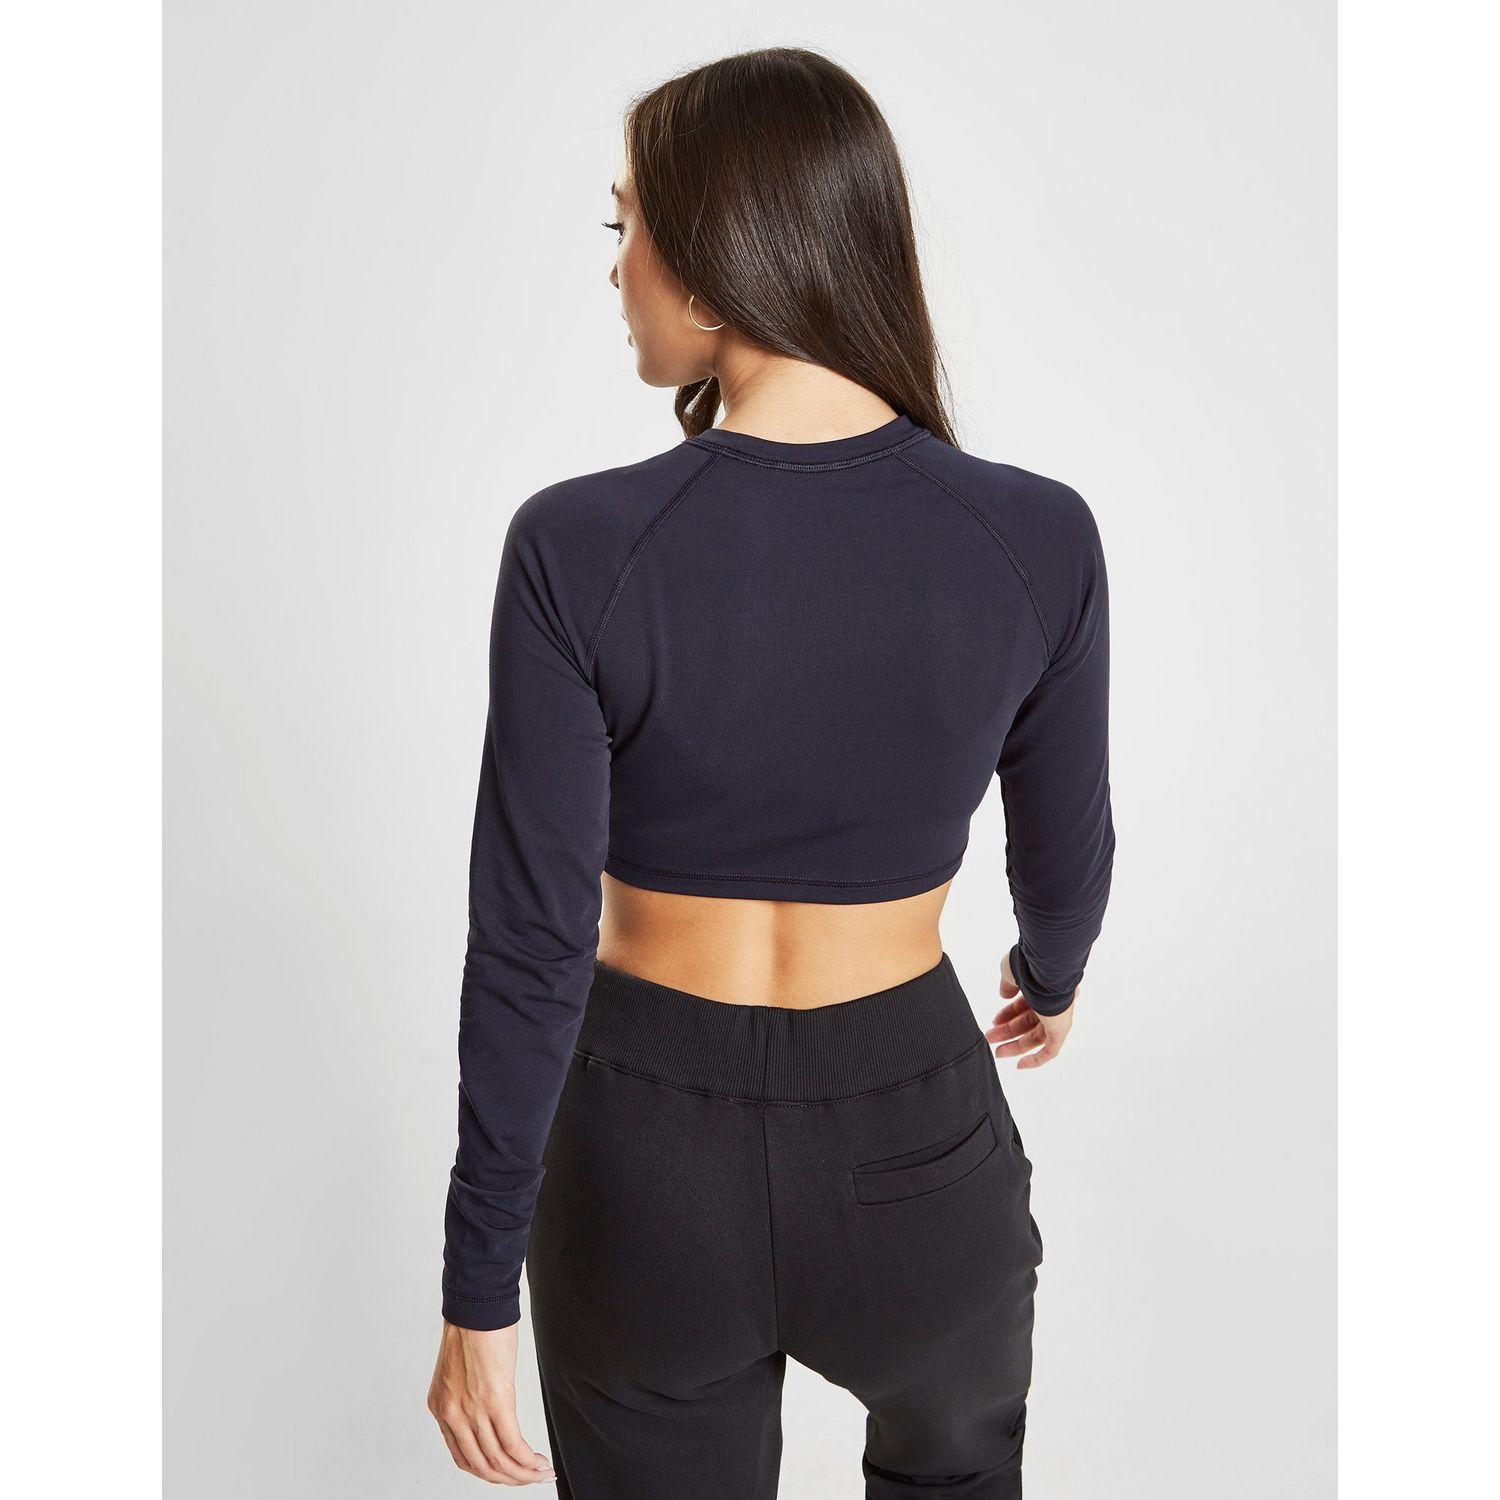 b836cc901752d Tommy Hilfiger - Blue Logo Long Sleeve Crop Top - Lyst. View fullscreen